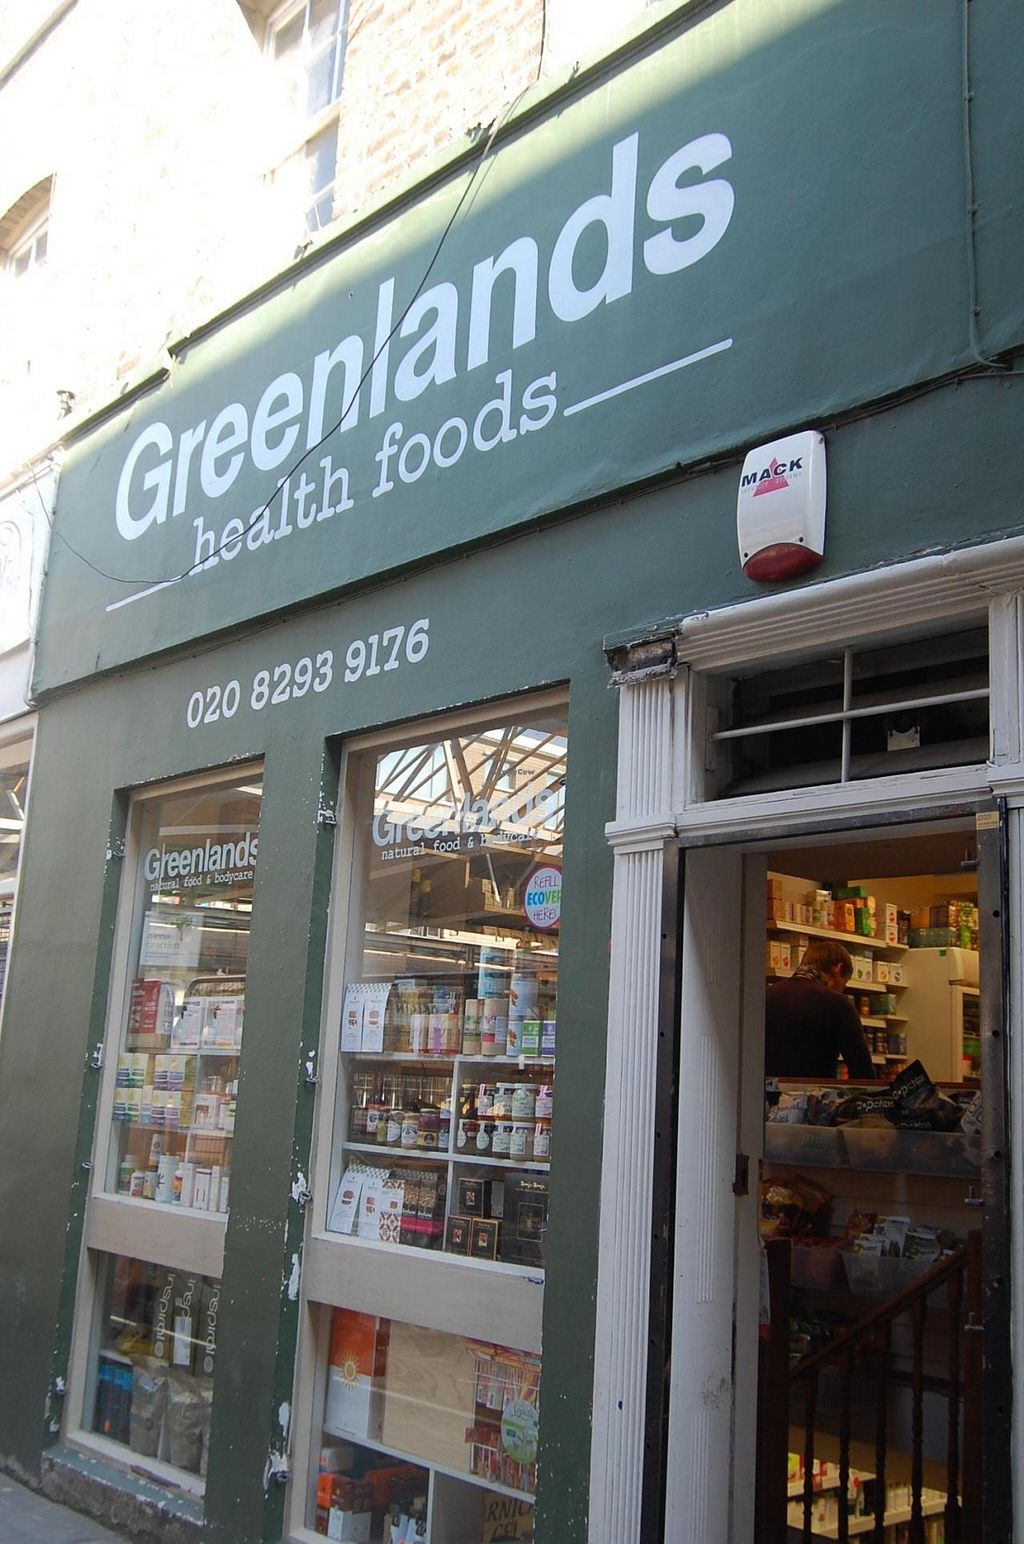 """Photo of Greenlands Wholefoods  by <a href=""""/members/profile/Clare"""">Clare</a> <br/>Store front <br/> June 10, 2015  - <a href='/contact/abuse/image/27314/105313'>Report</a>"""